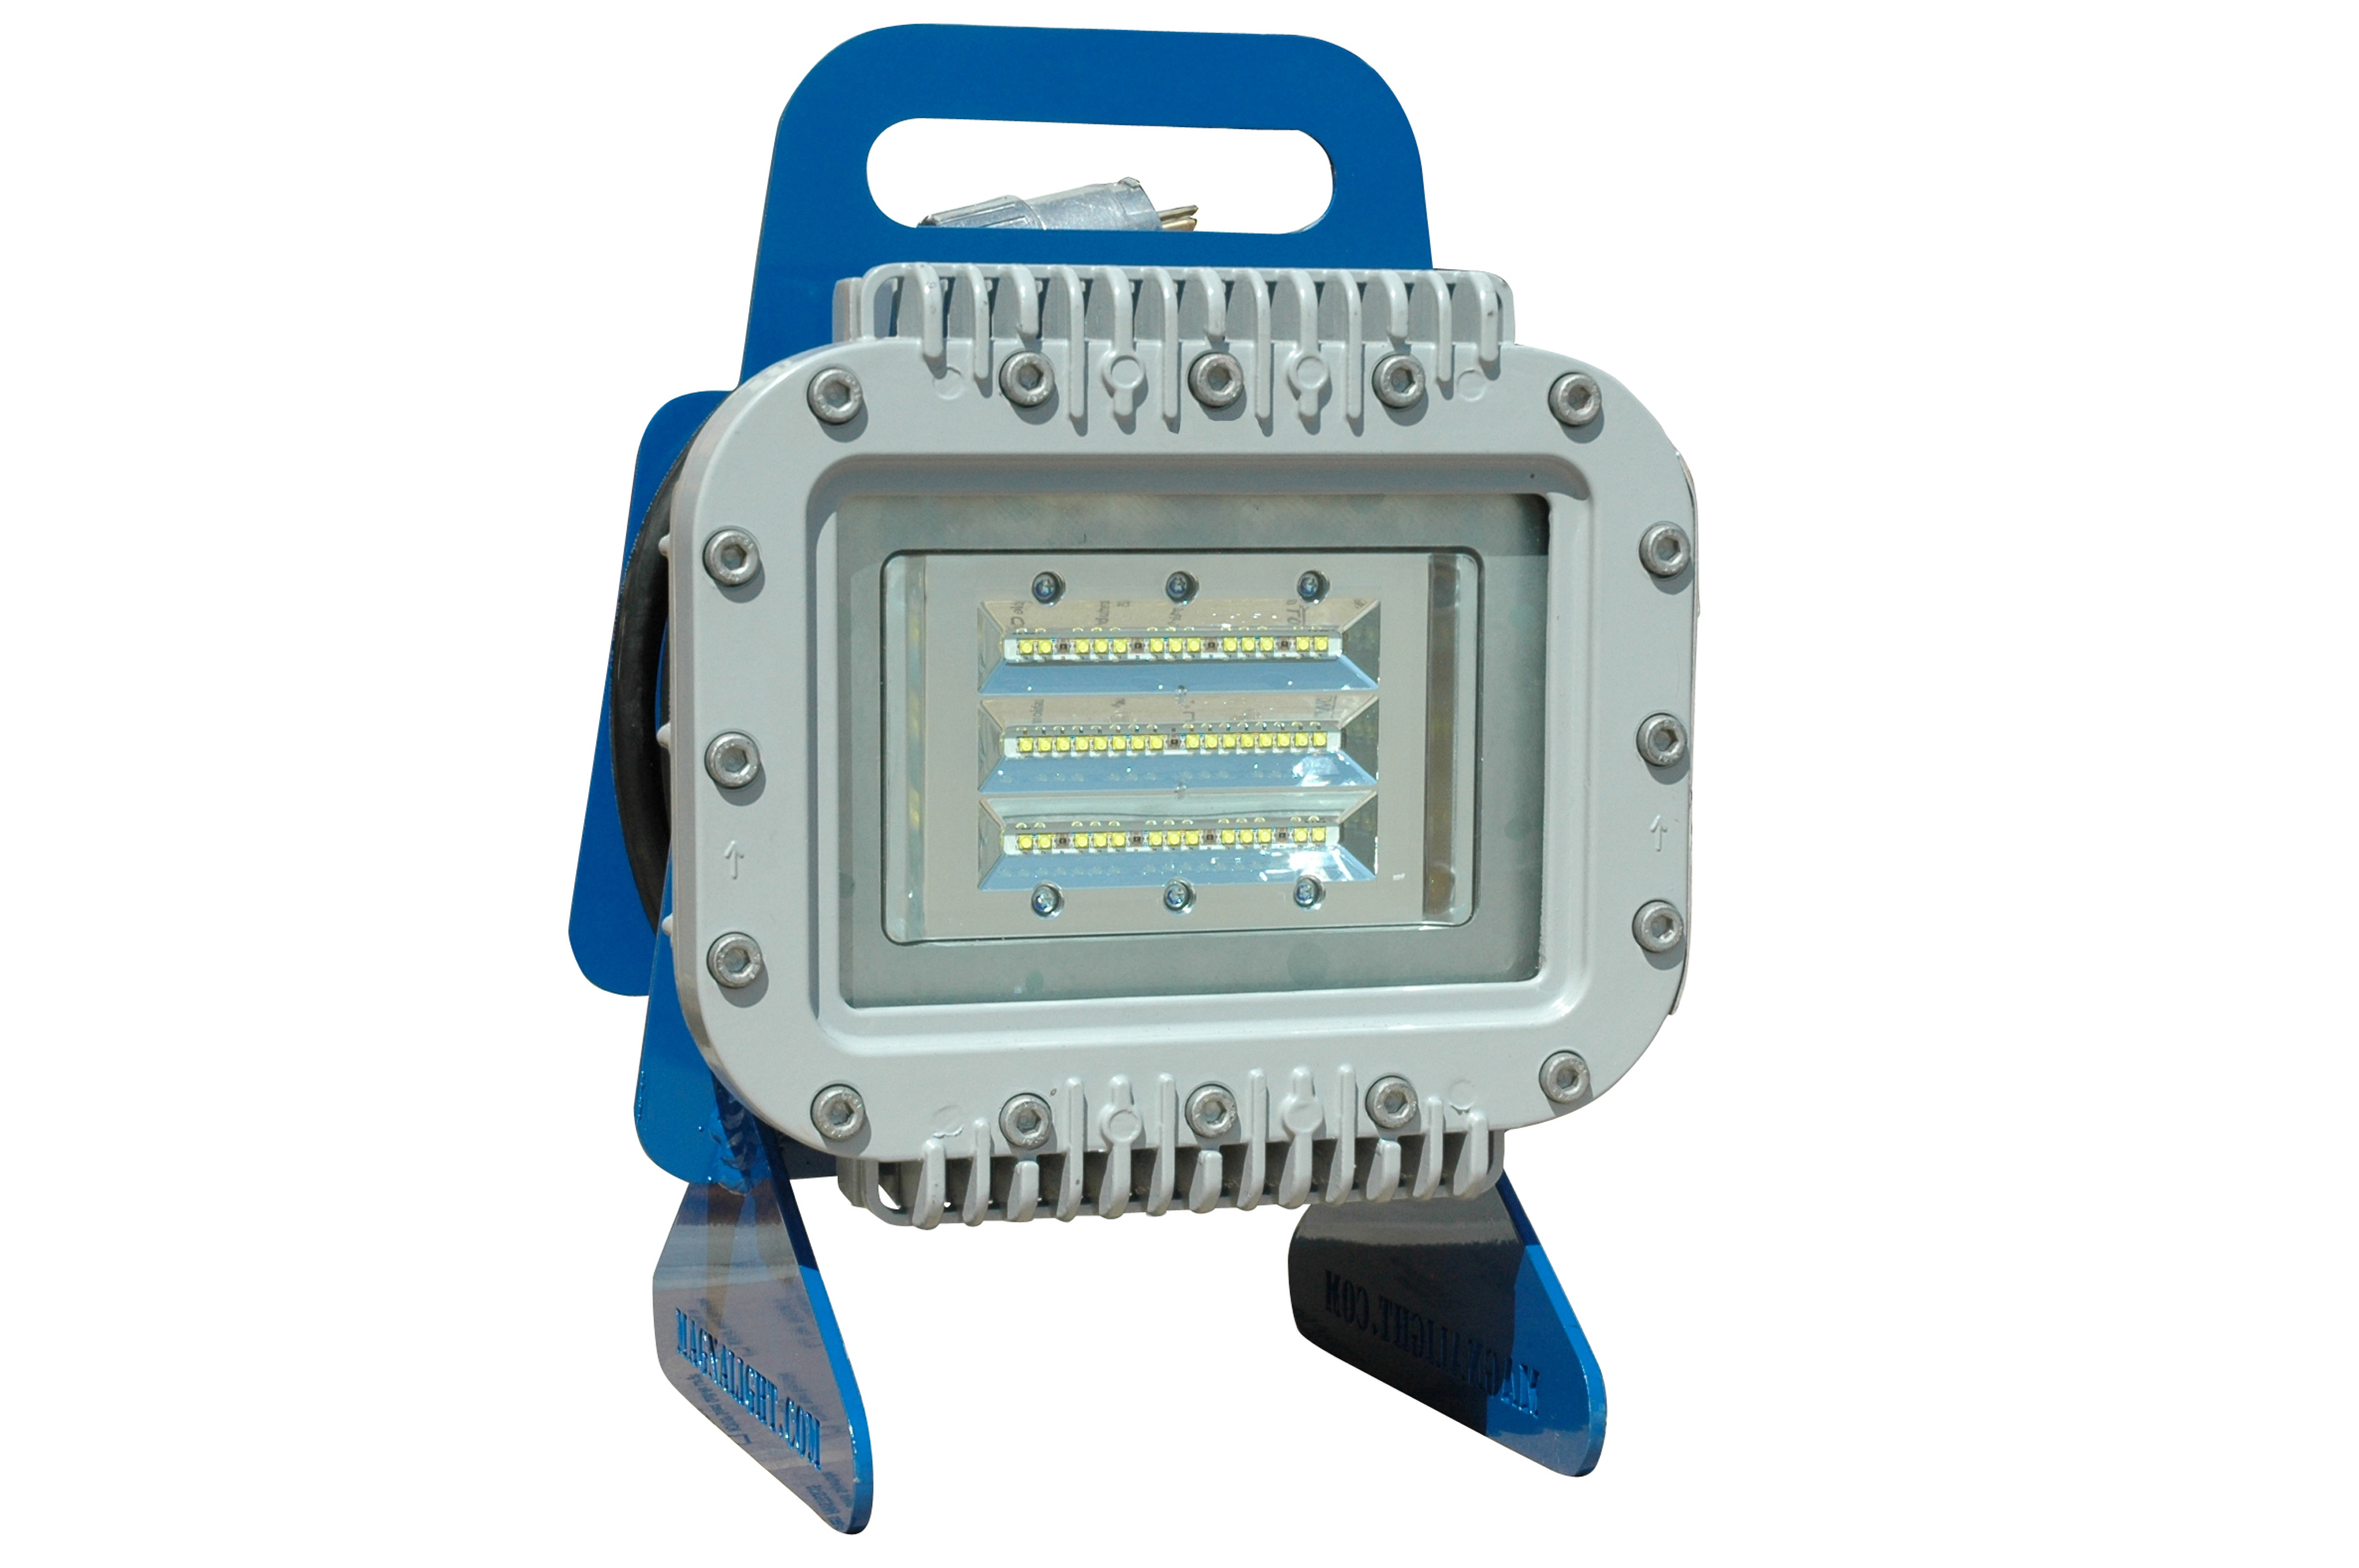 Larson Electronics Releases Portable Explosion Proof